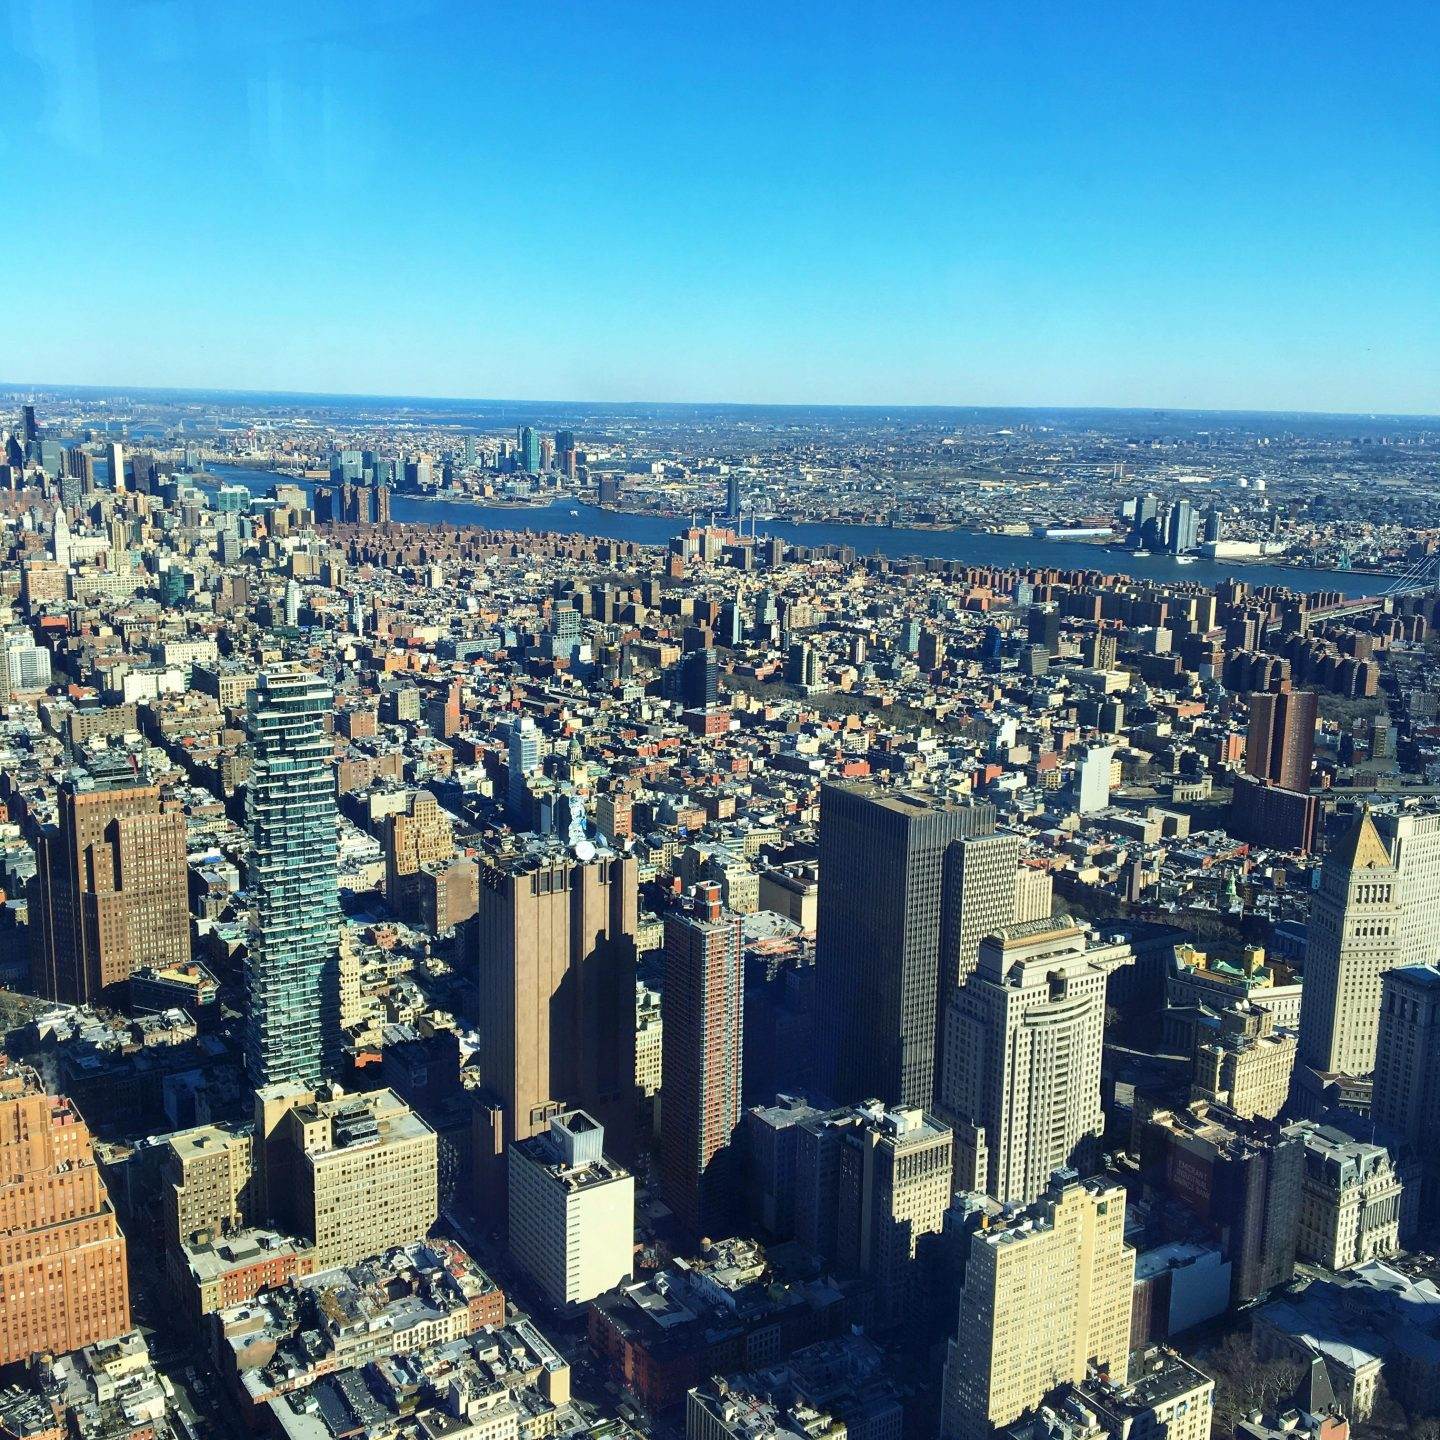 Two Days in New York | One World View